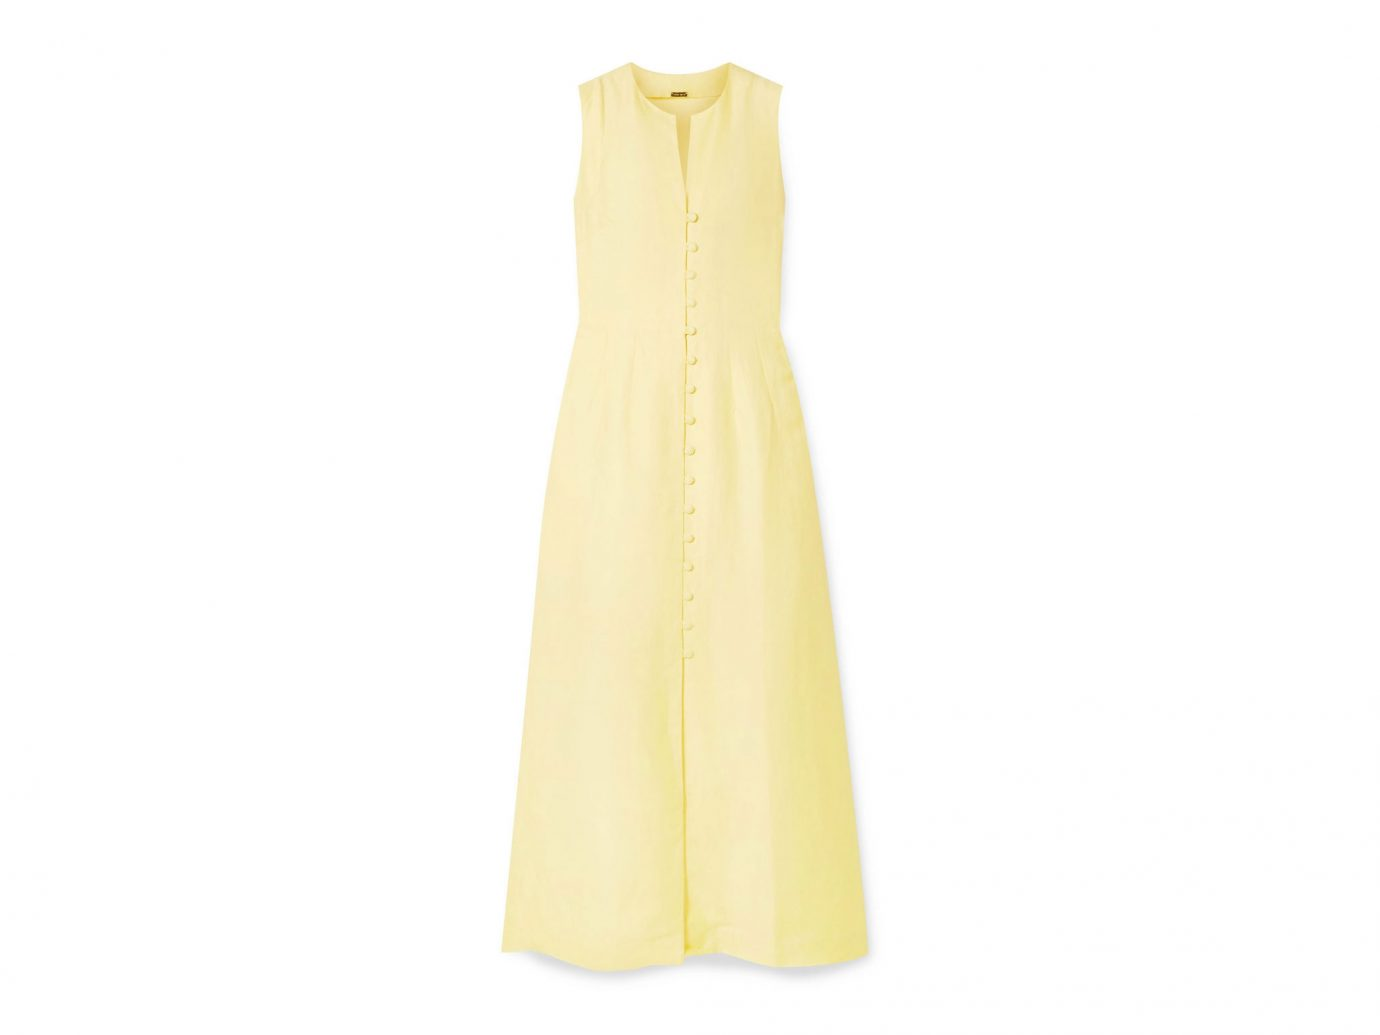 pale yellow linen-blend midi dress from Cult Gaia